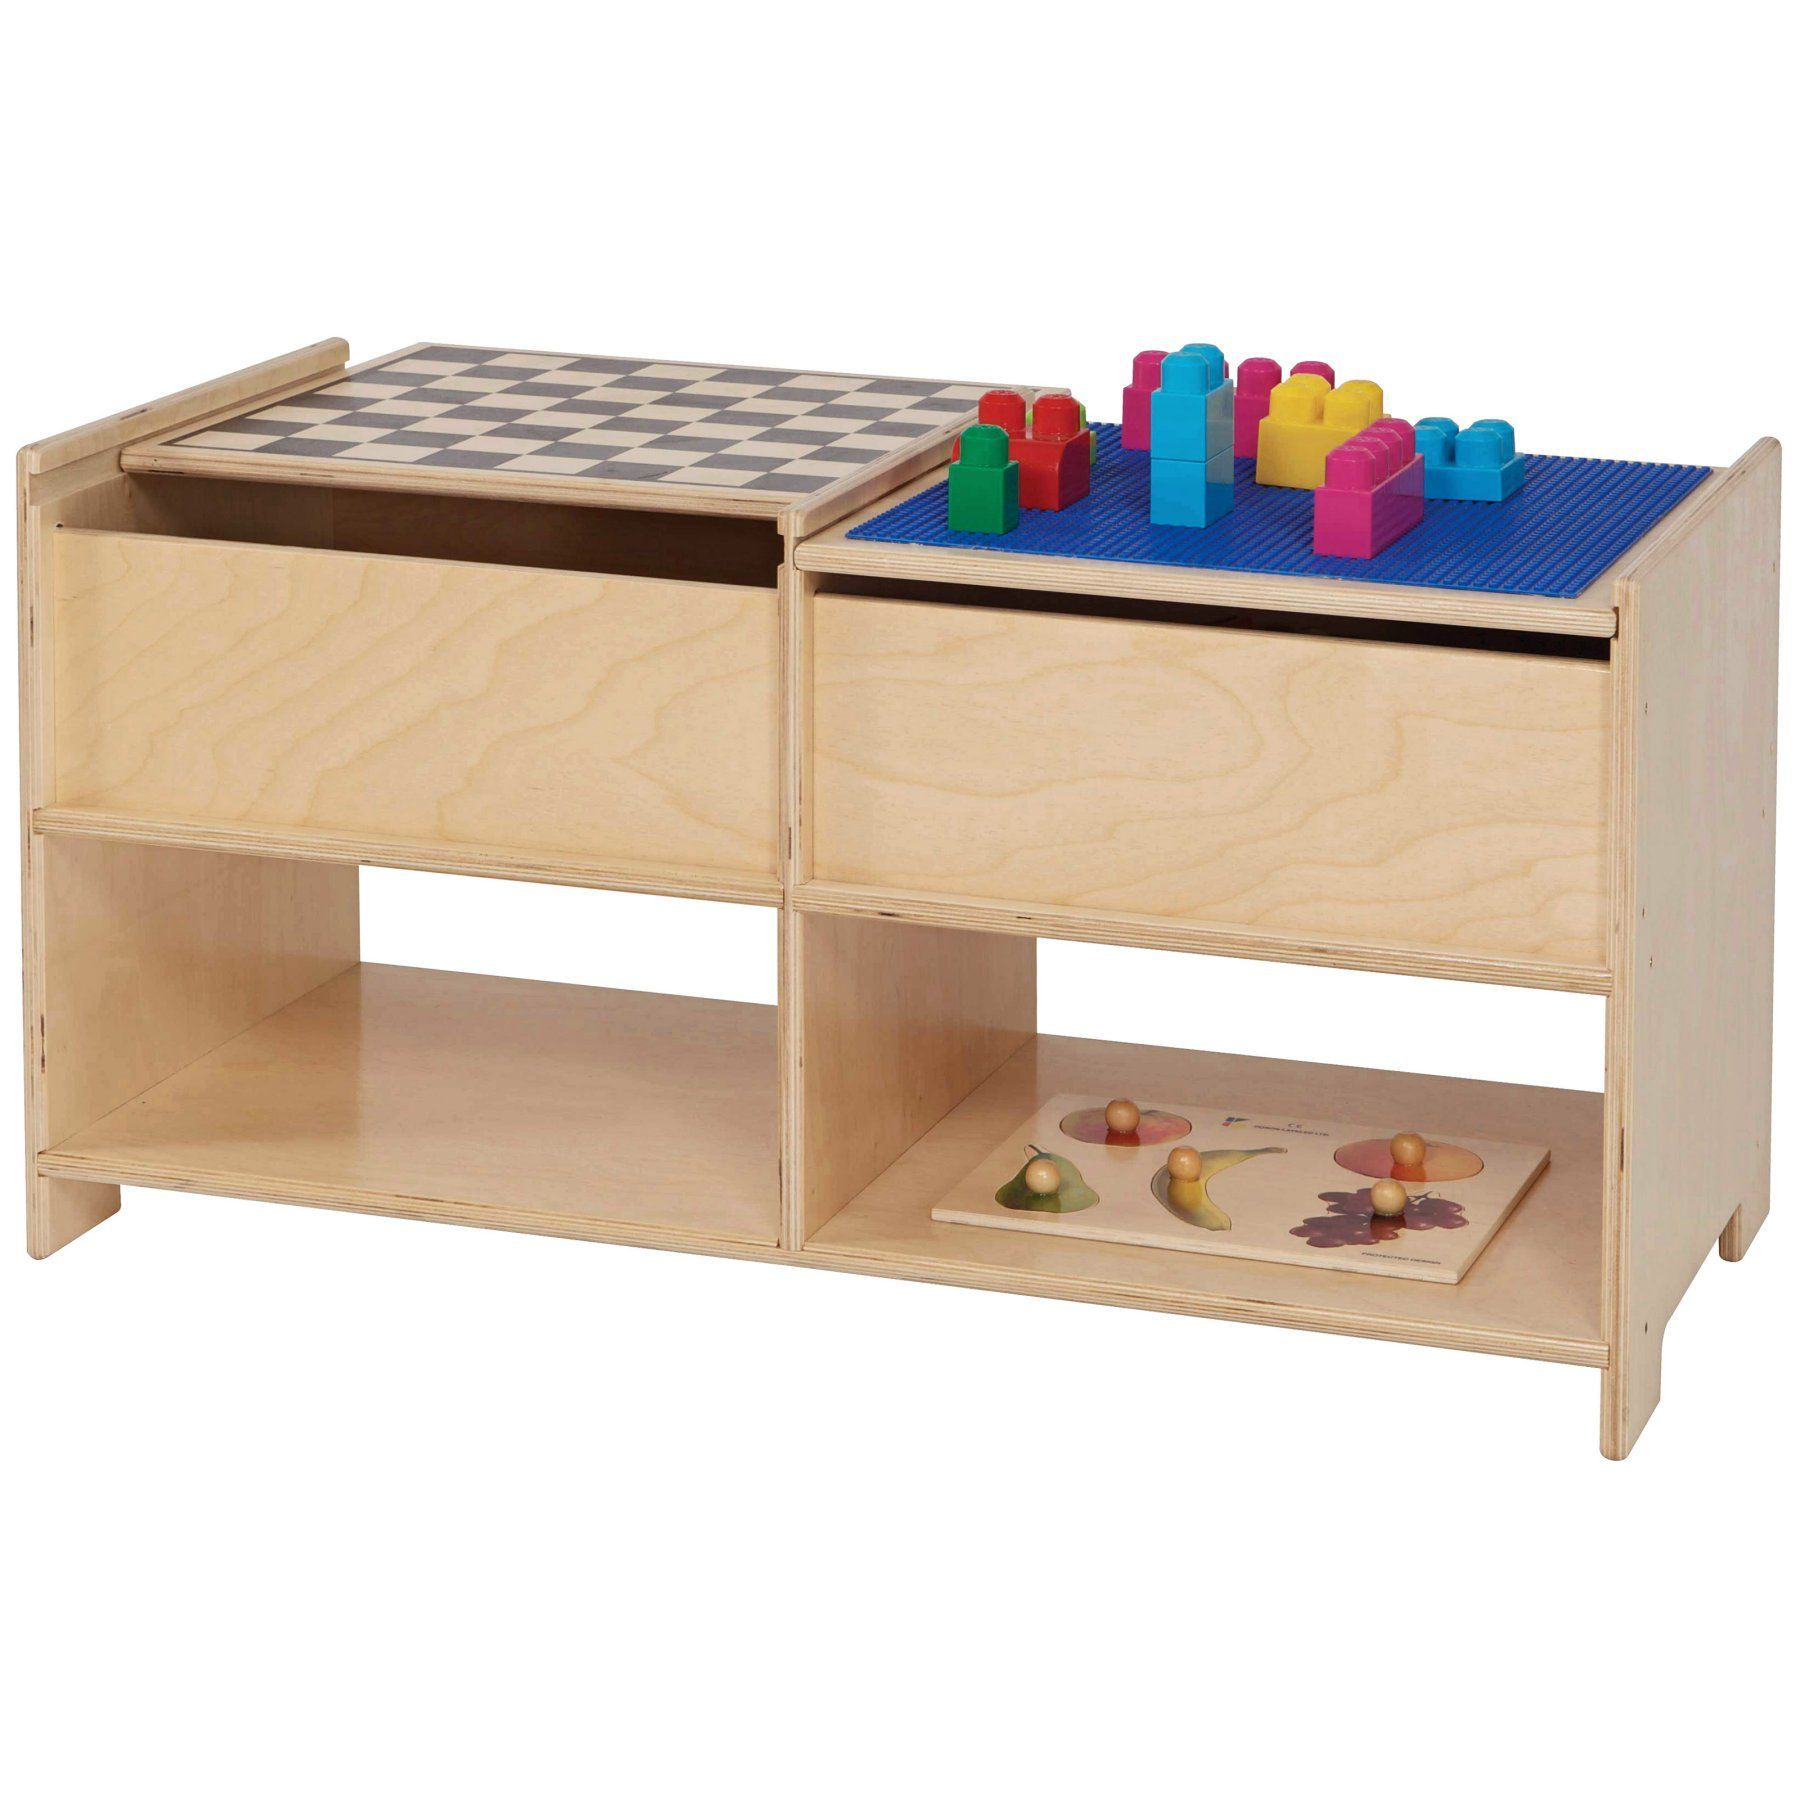 Wood designs build n play table wd play table wood design